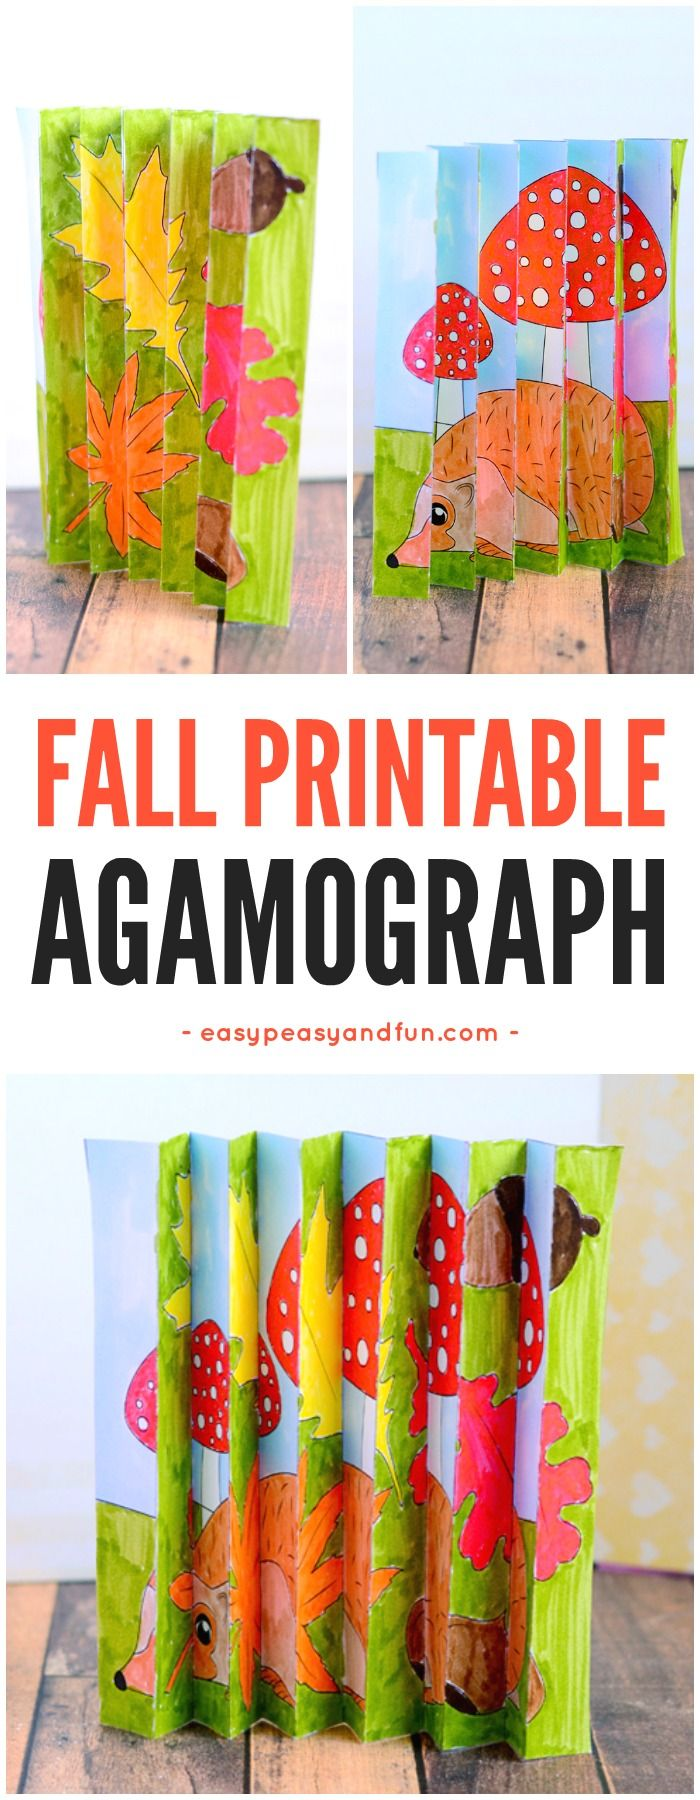 Printable Fall Agamograph Template Paper Craft for Kids